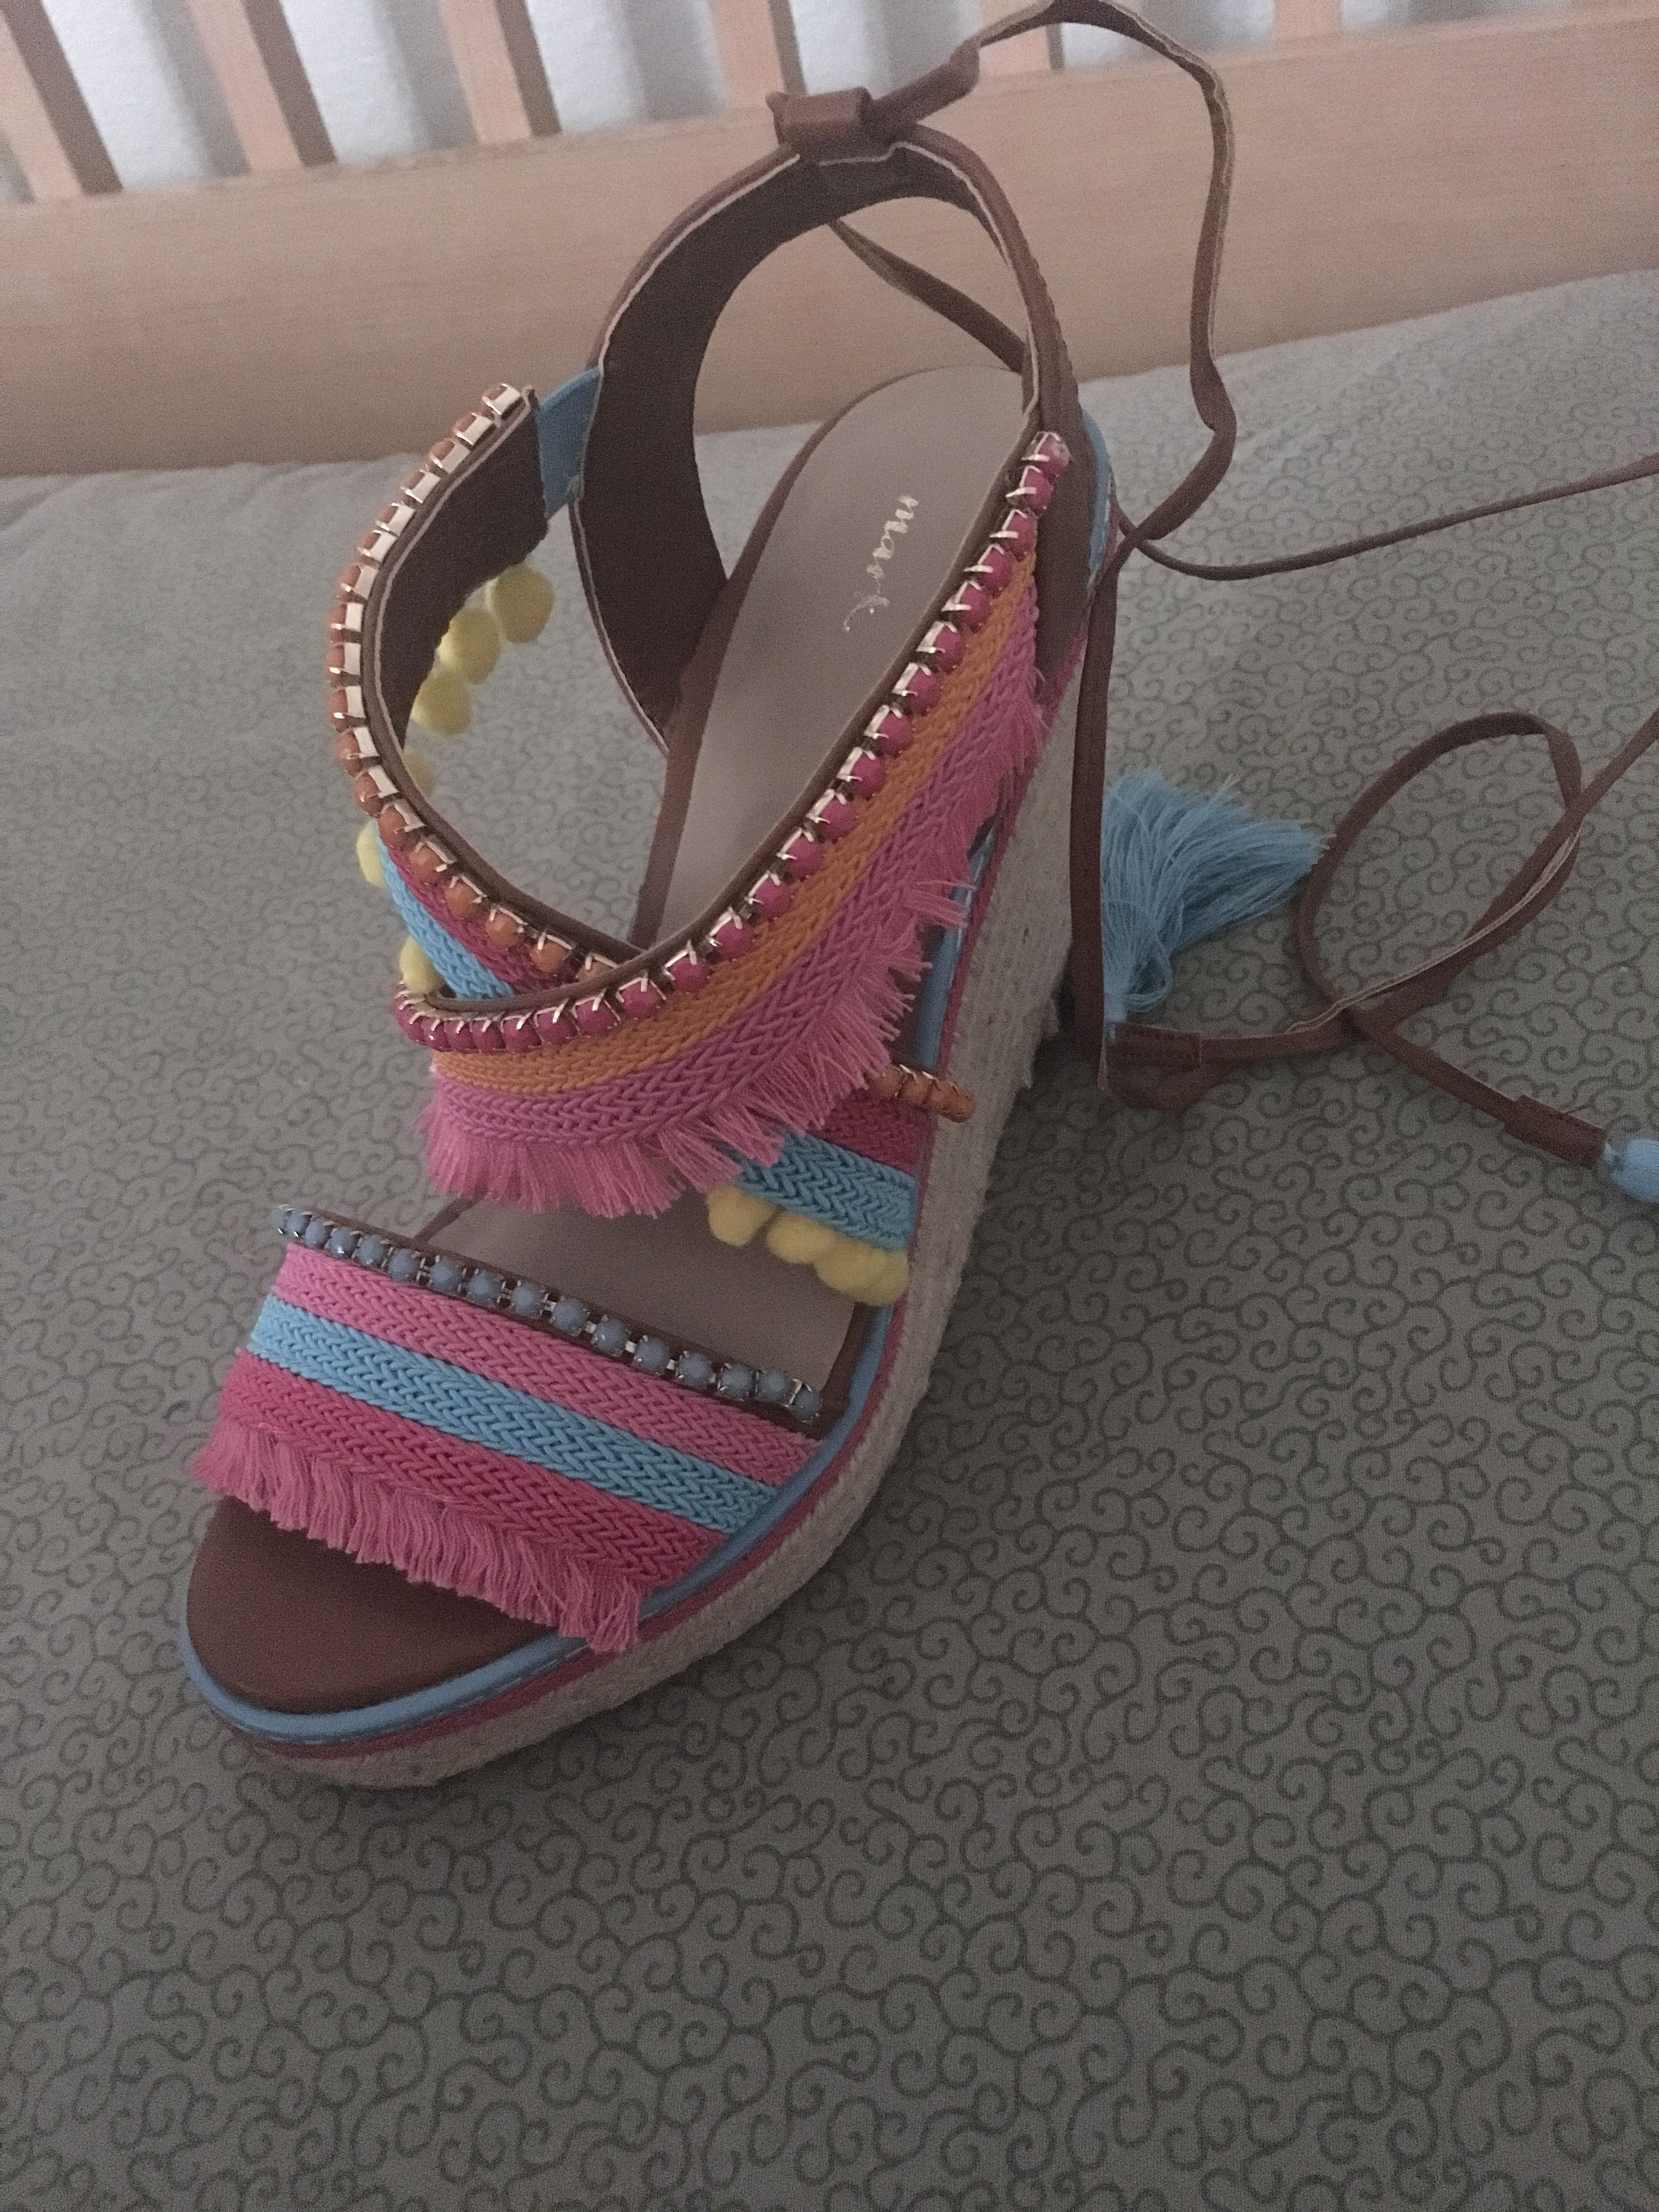 77700fa1c Check out these super cute colorful wedges! Perfect for summer! #Mark  www.youravon.com/JCASTRO